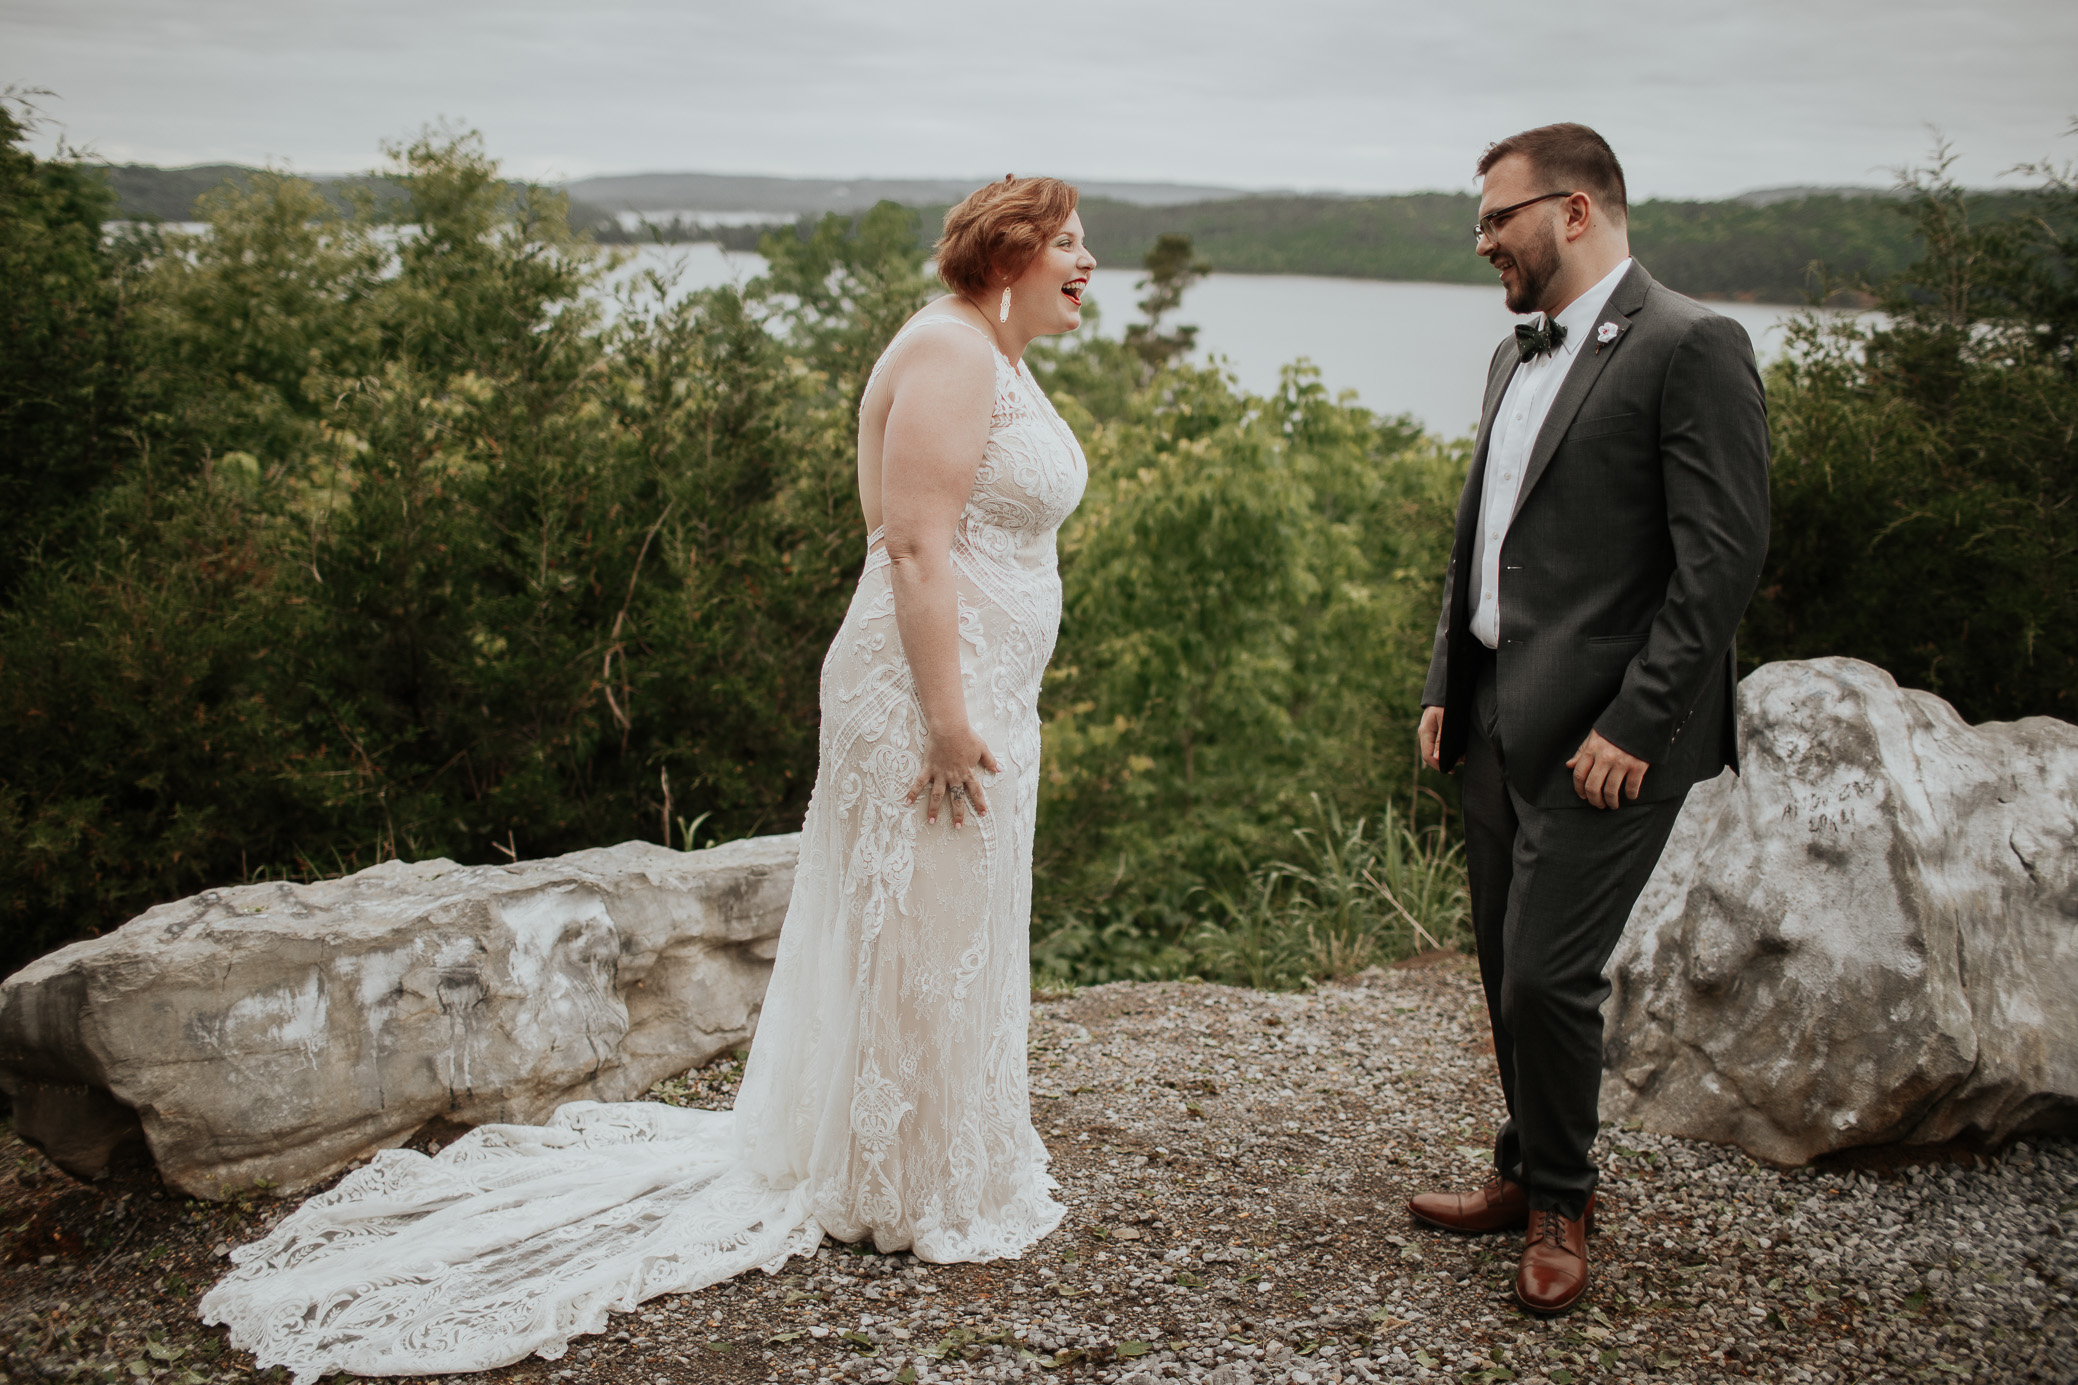 Alabama and Tennessee wedding photography at Lake Guntersville State Park by David A. Smith of DSmithImages Wedding Photography, Portraits, and Events, a wedding photographer in Birmingham, Alabama and Nashville, Tennessee.